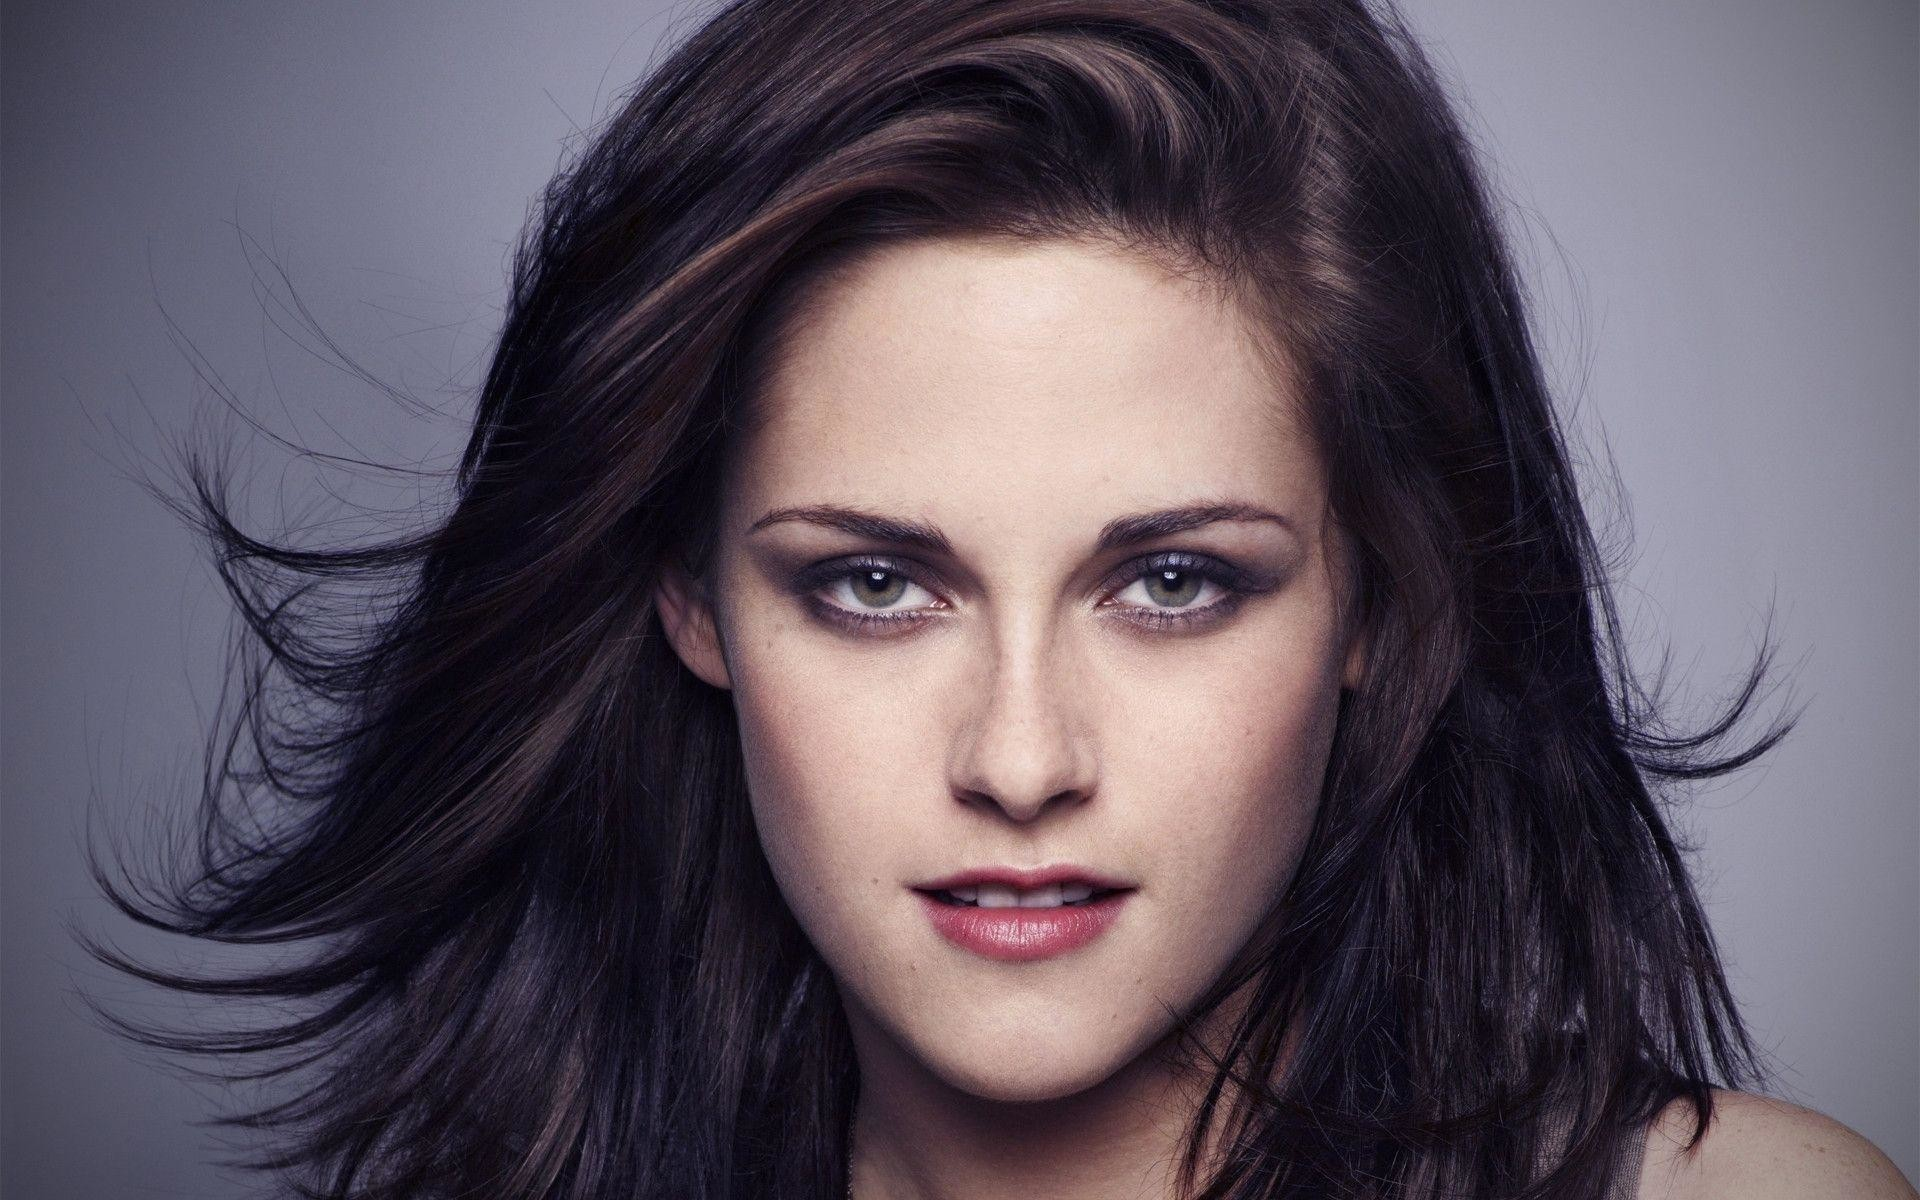 Res: 1920x1200, Kristen Stewart HD Wallpapers - HD Wallpapers Inn